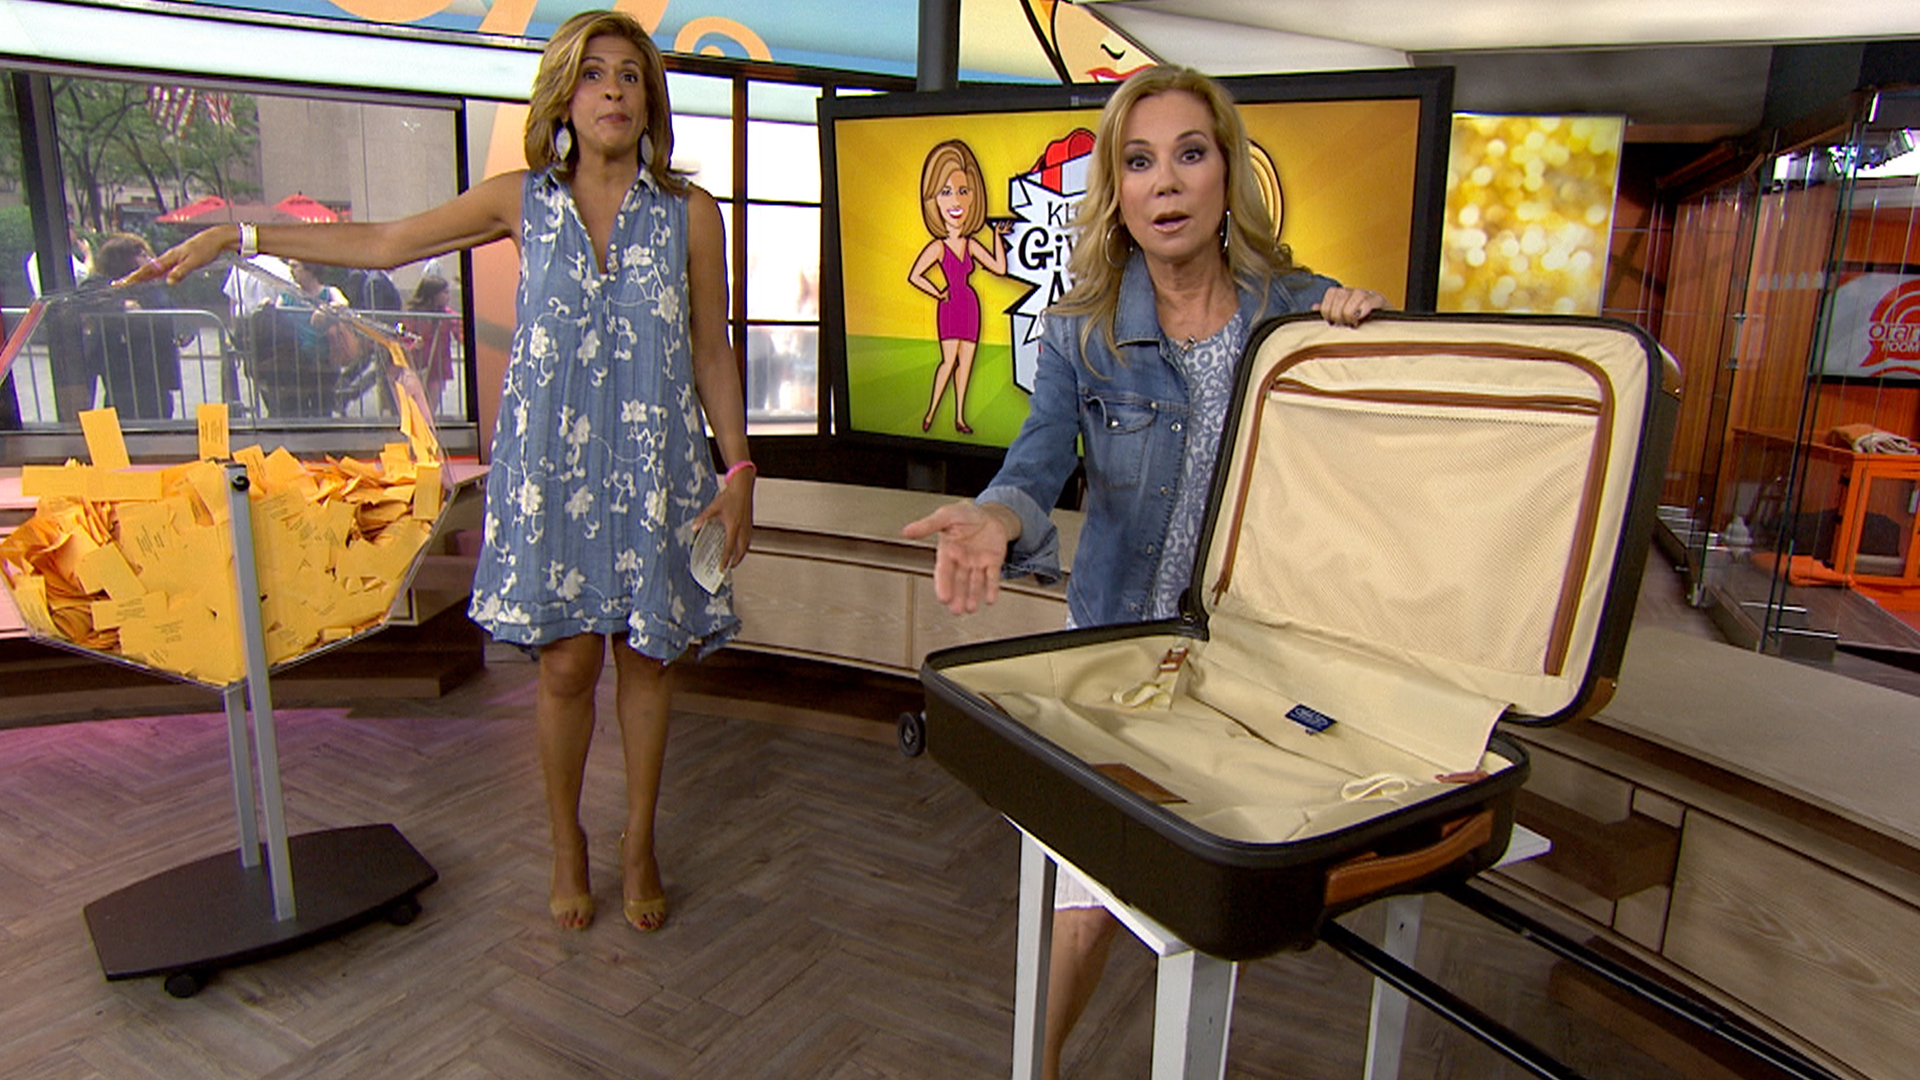 kathie lee and hoda are sending a lucky klg hoda give away a spinning carry on bag to lucky